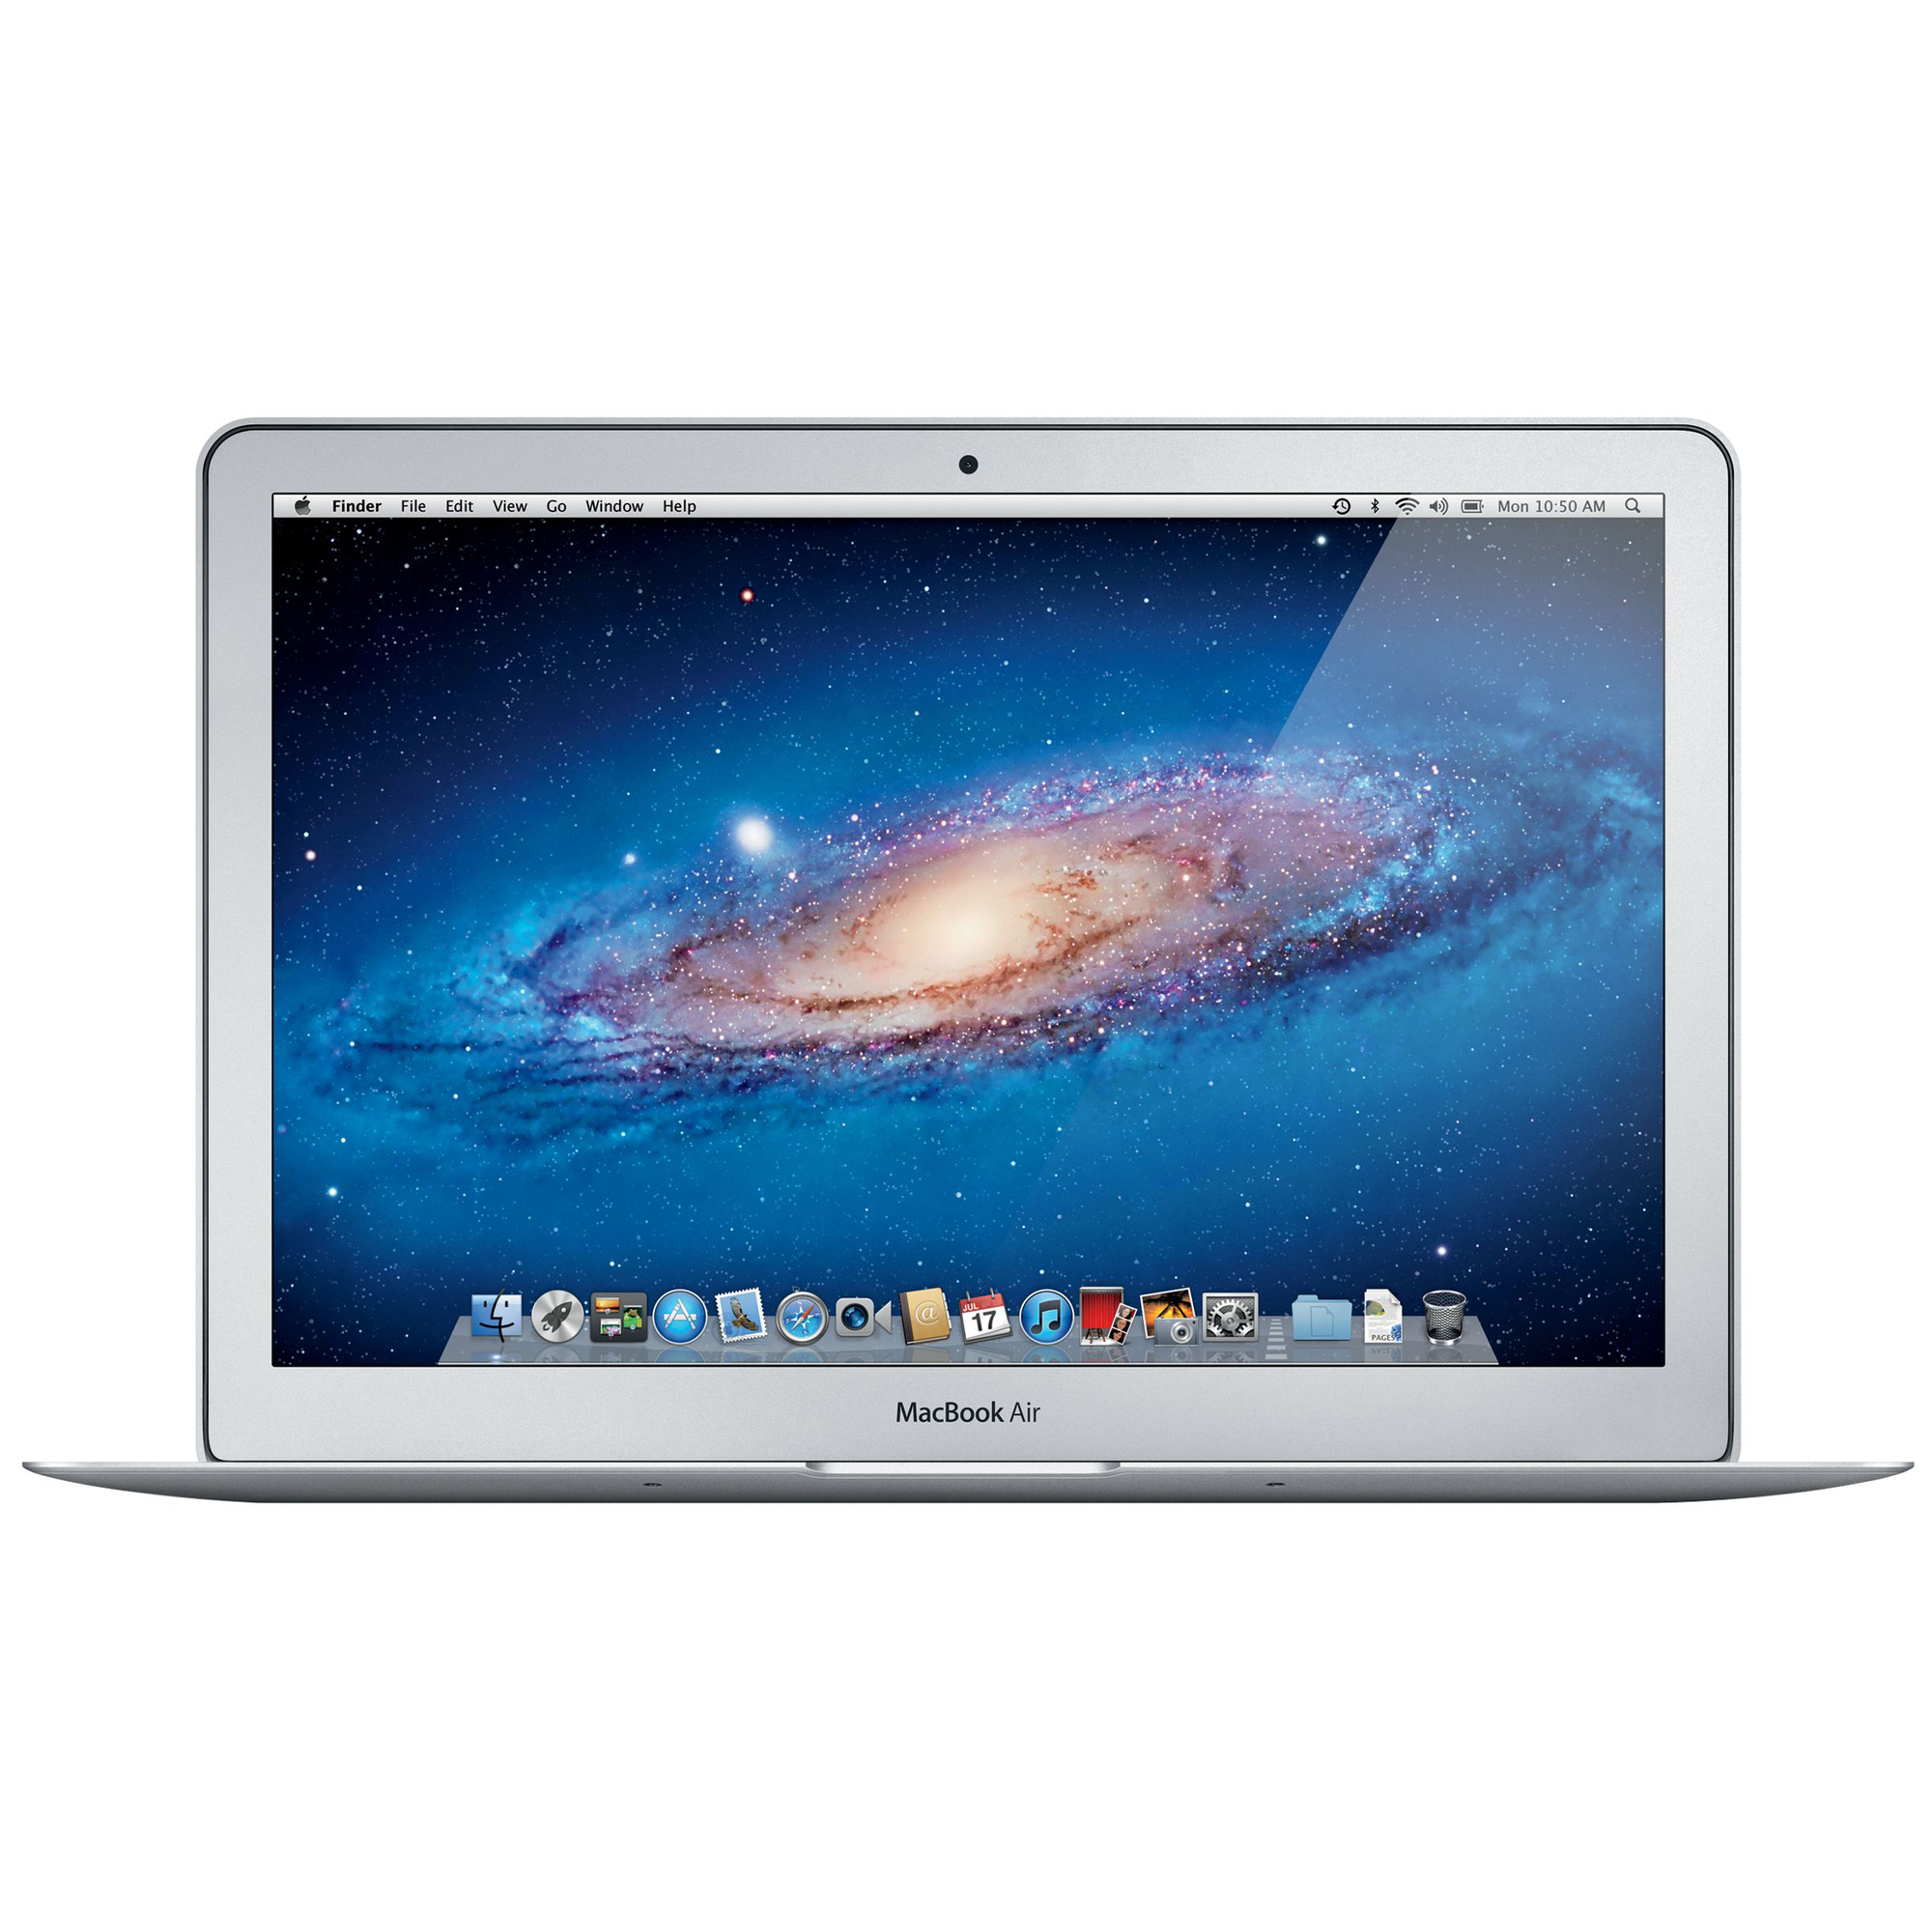 Apple MacBook Air MD761F/A 33.8 cm 13.3inch LED Notebook - Intel Core i5 1.40 GHz